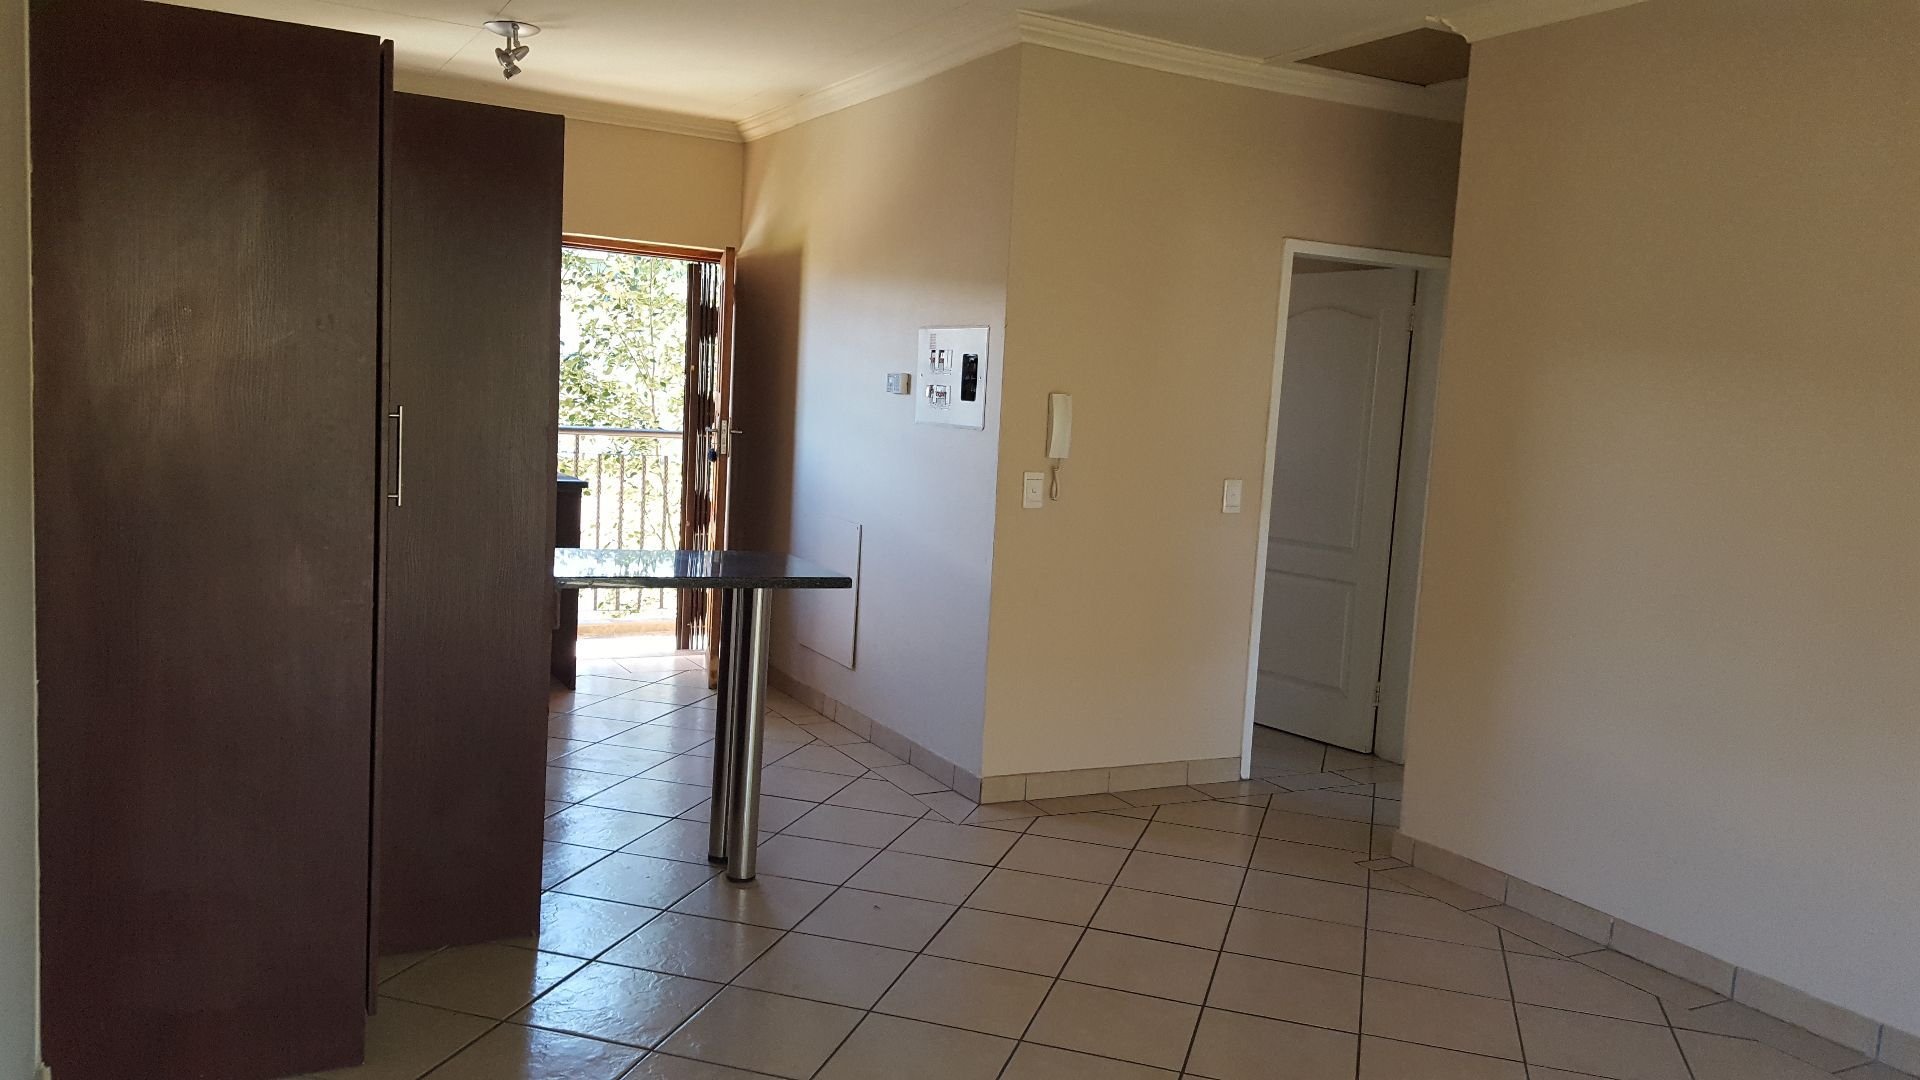 Potchefstroom Central property for sale. Ref No: 13514573. Picture no 12